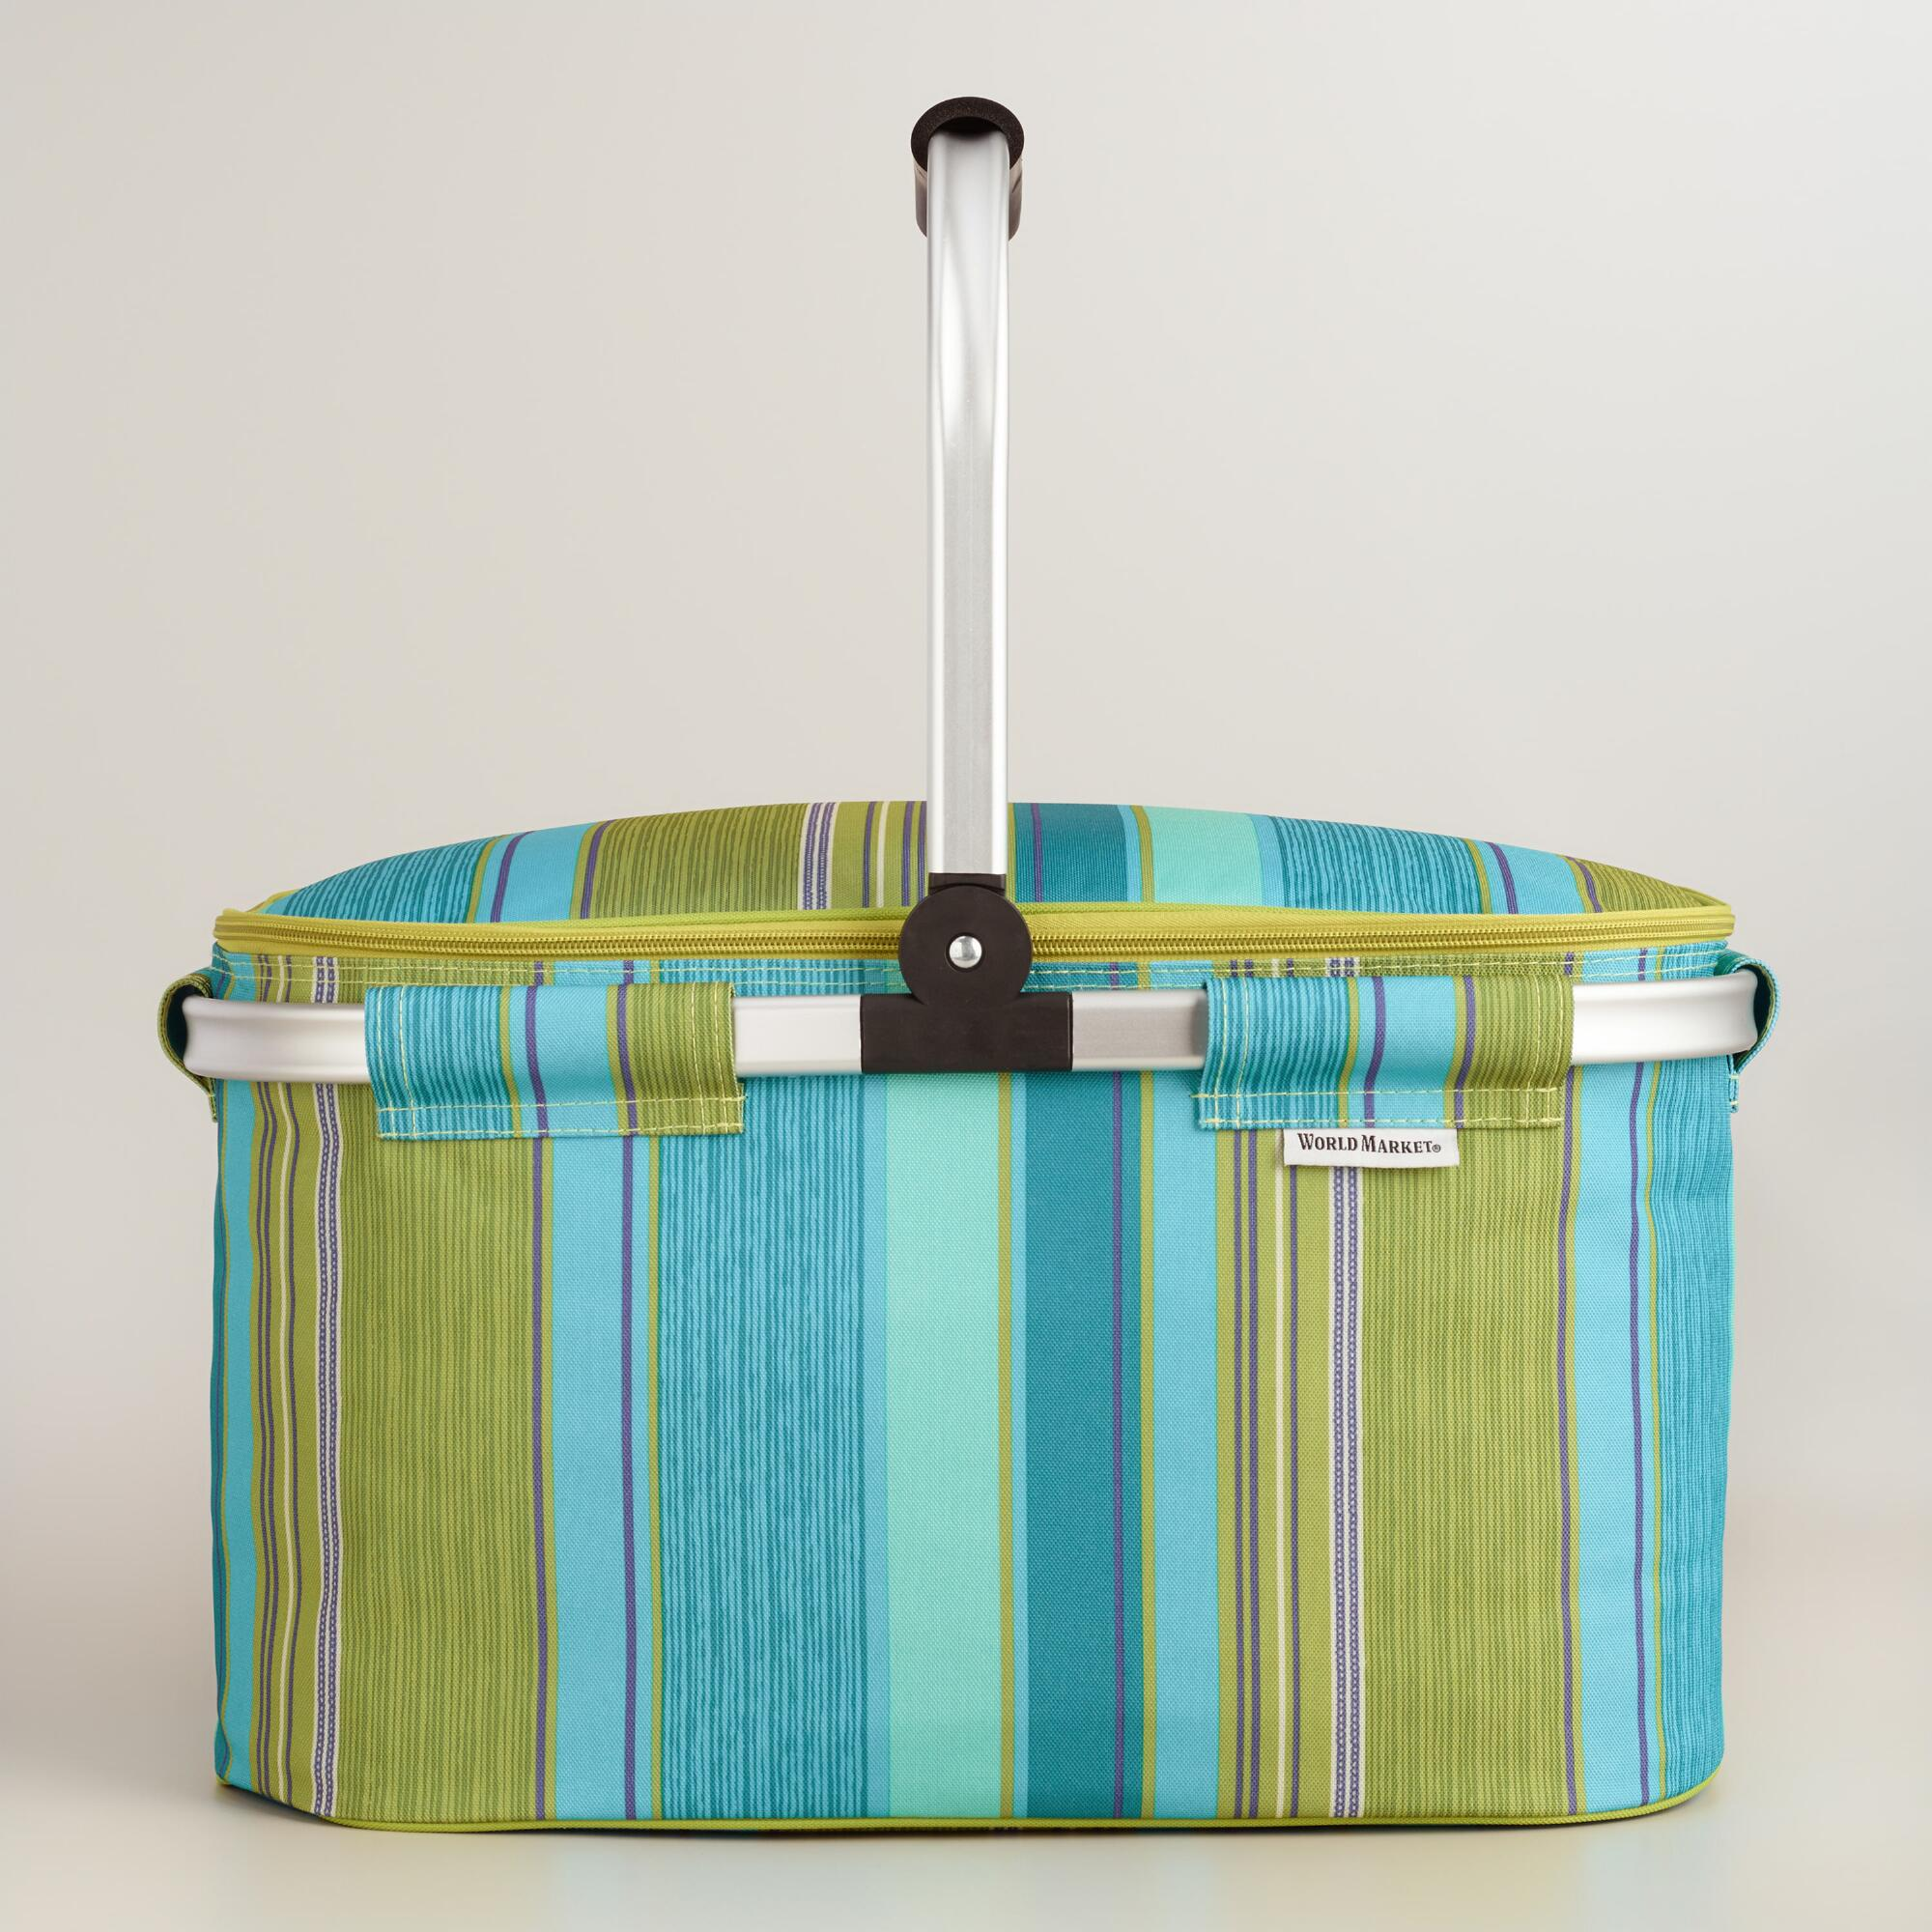 Collapsible Insulated Picnic Basket For 4 : Coastal modern insulated collapsible tote bag world market